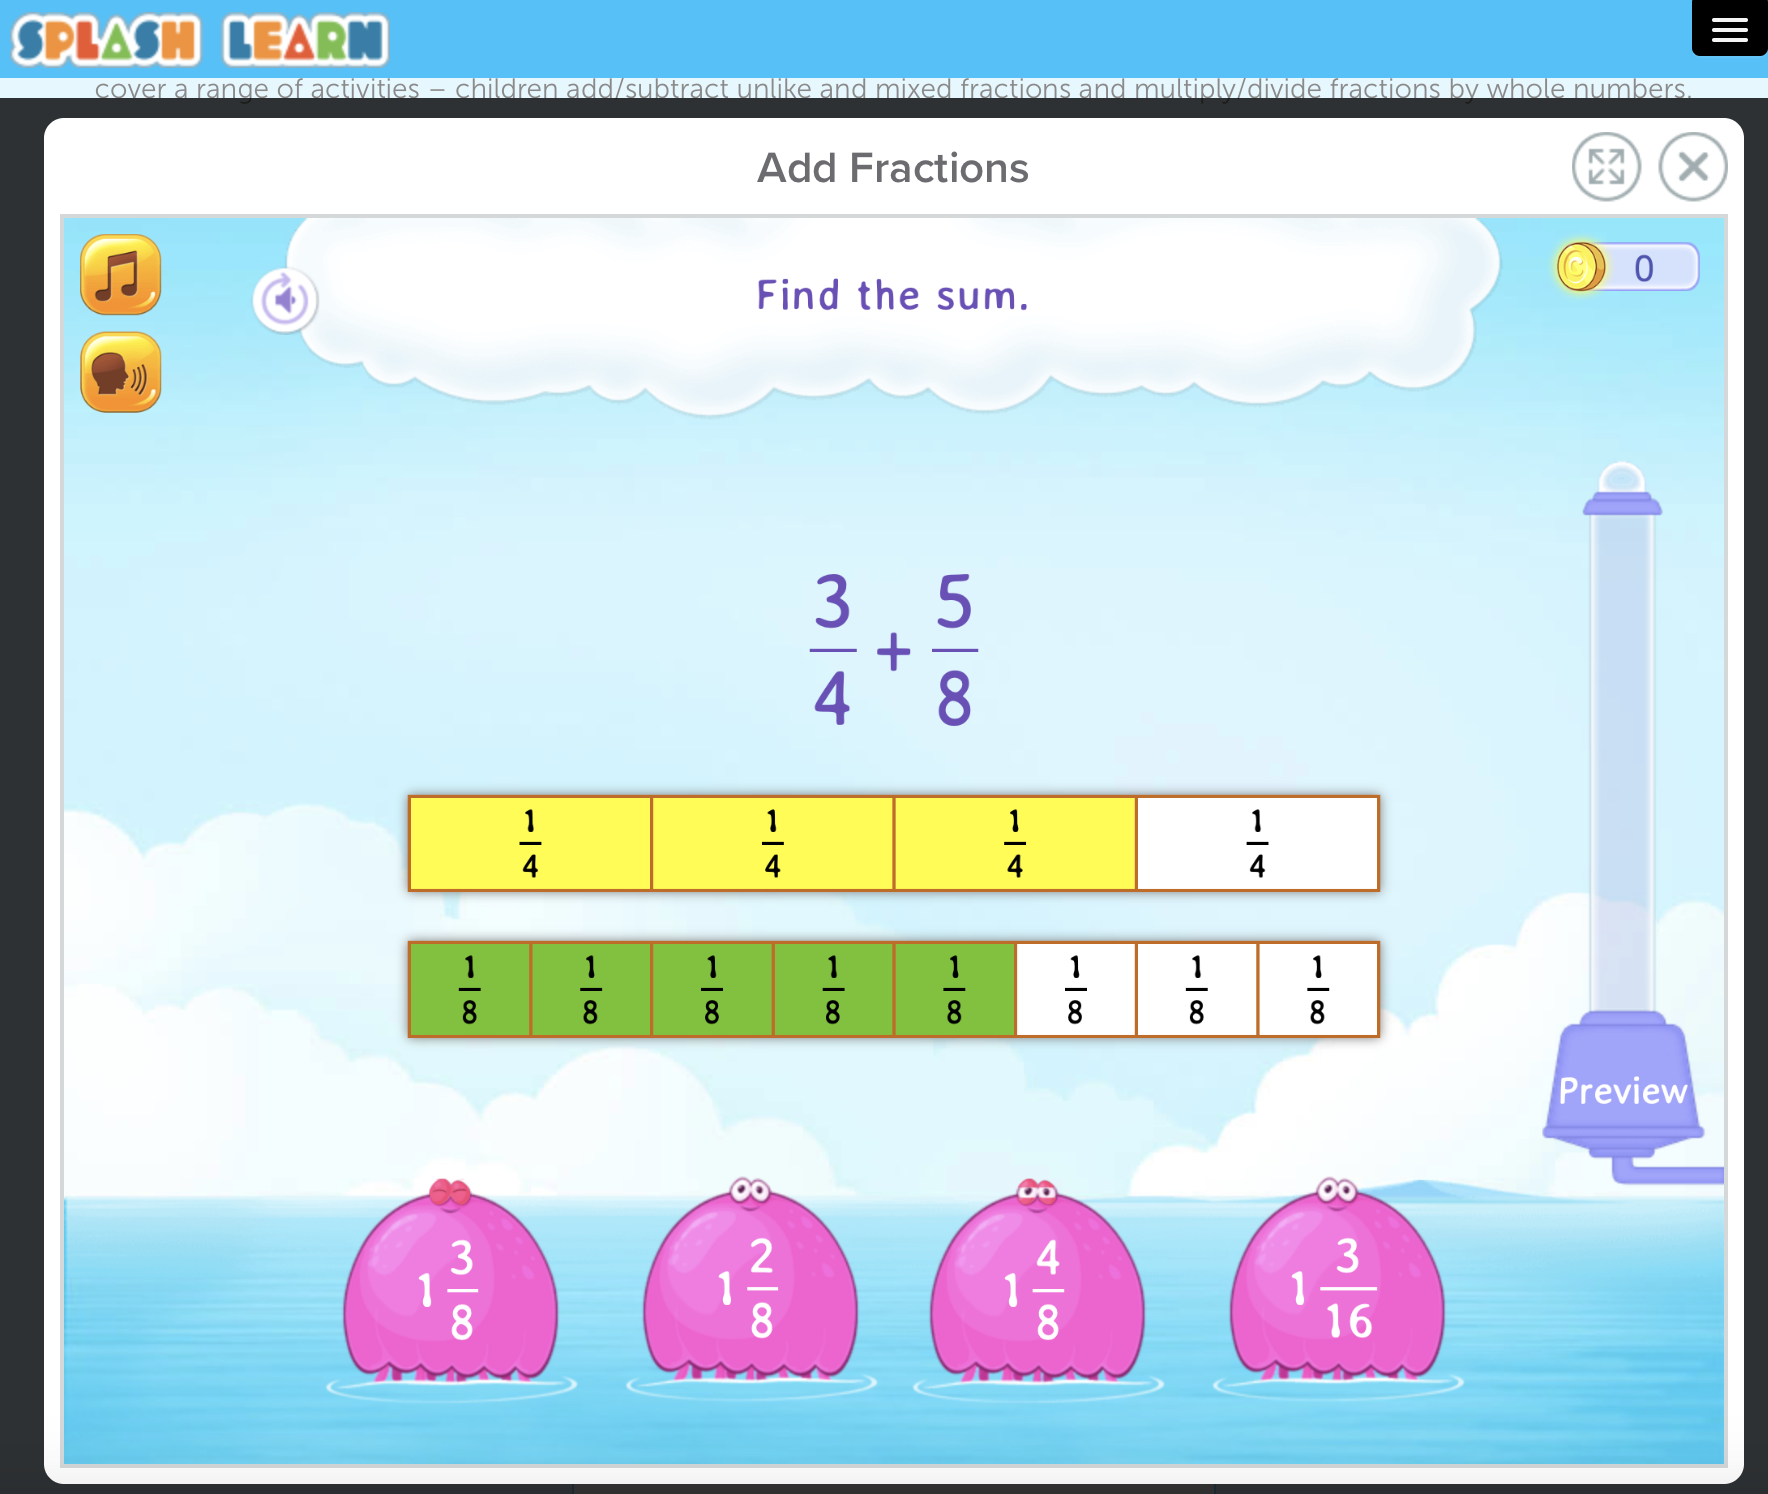 Practice Fractions With Splash Learn In